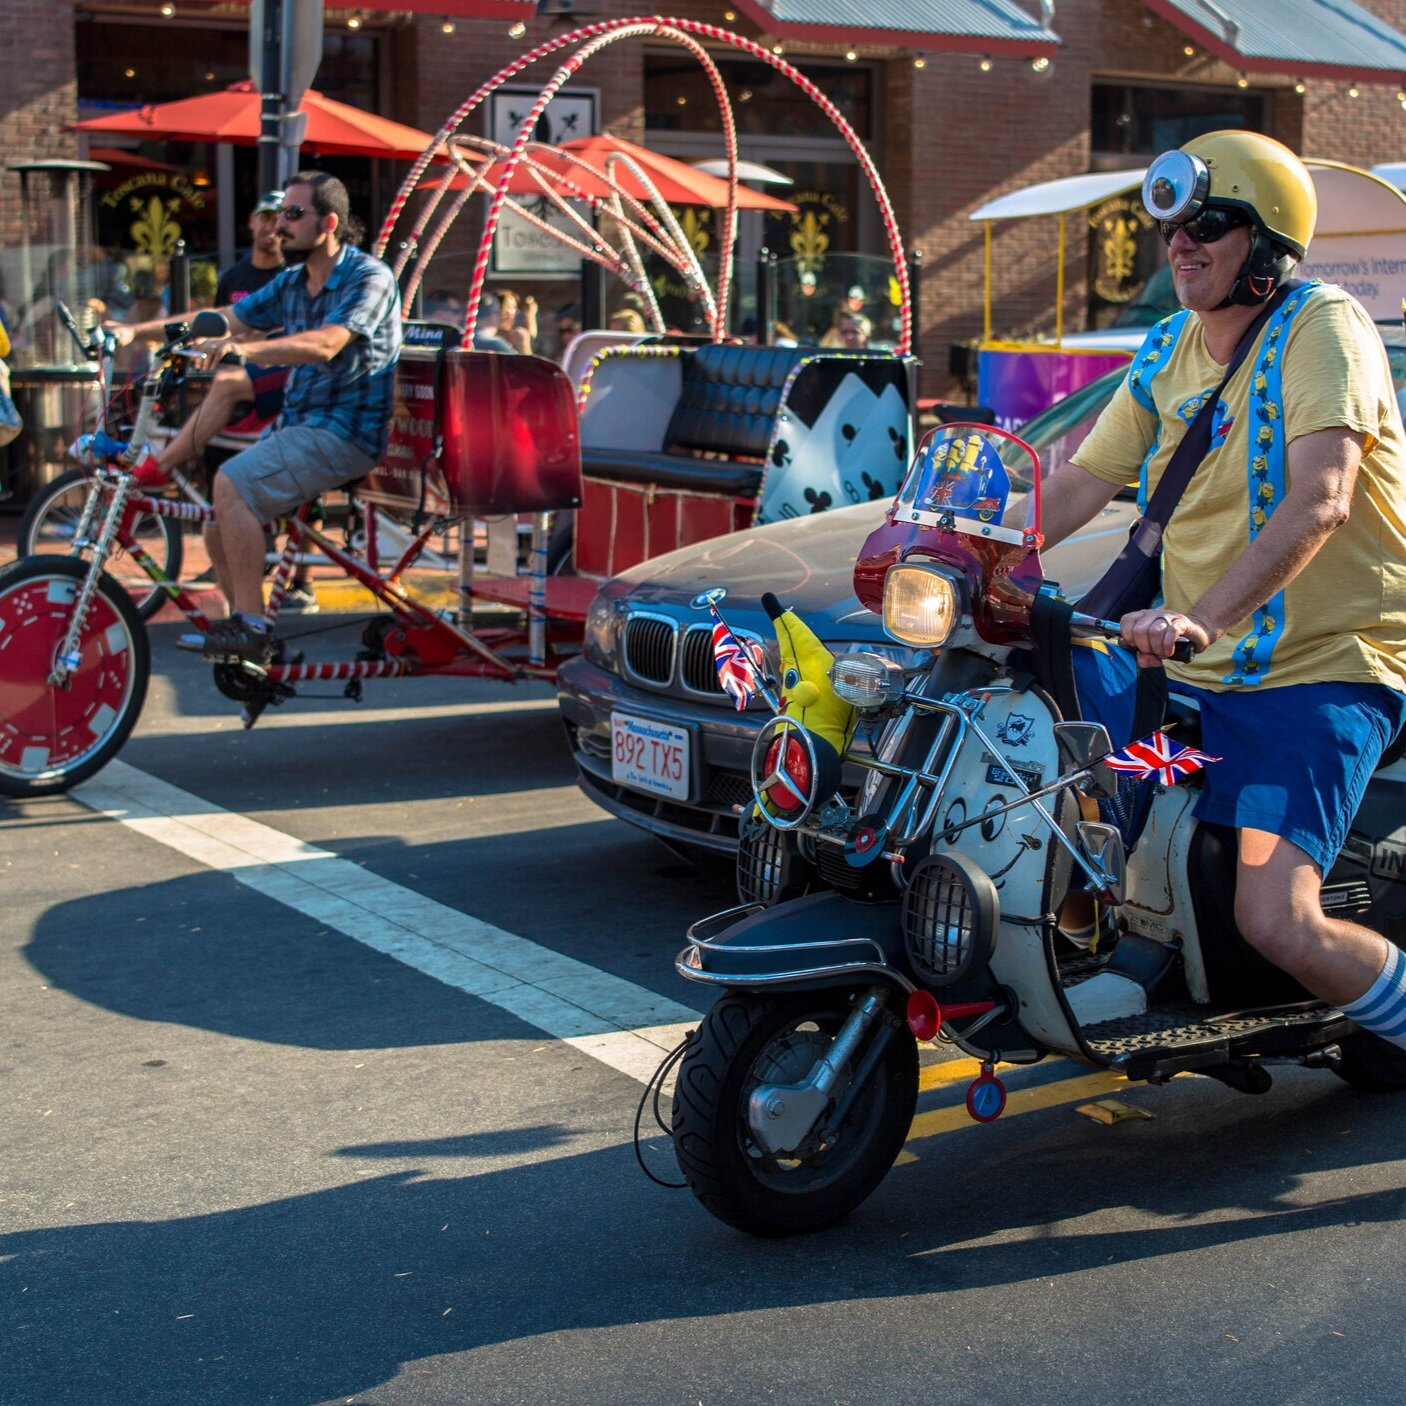 If you're planning a special event, - why not hire VIP Pedicabs to provide the transportation? We can pick up attendees at any location and deliver them to the destination of your choosing. This is the safe, environmentally friendly way to get around town and we can provide an amazing advertising campaign for your event at the same time.